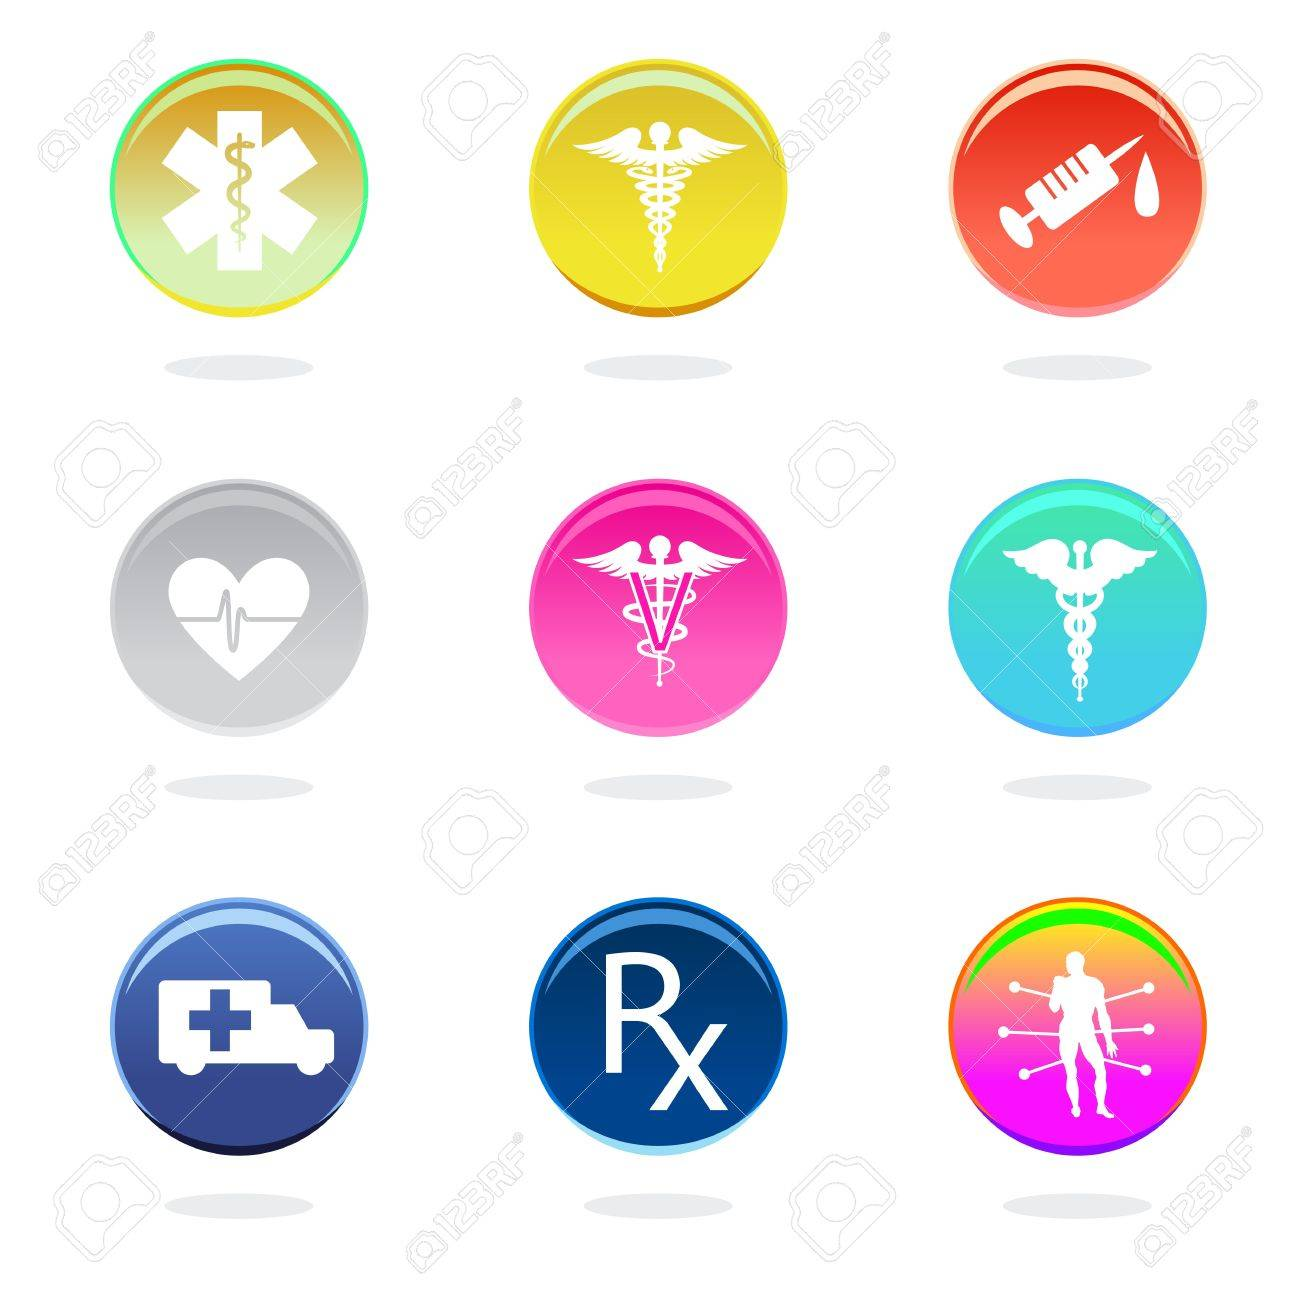 Medical icons in color circles on white background. Stock Vector - 14984051